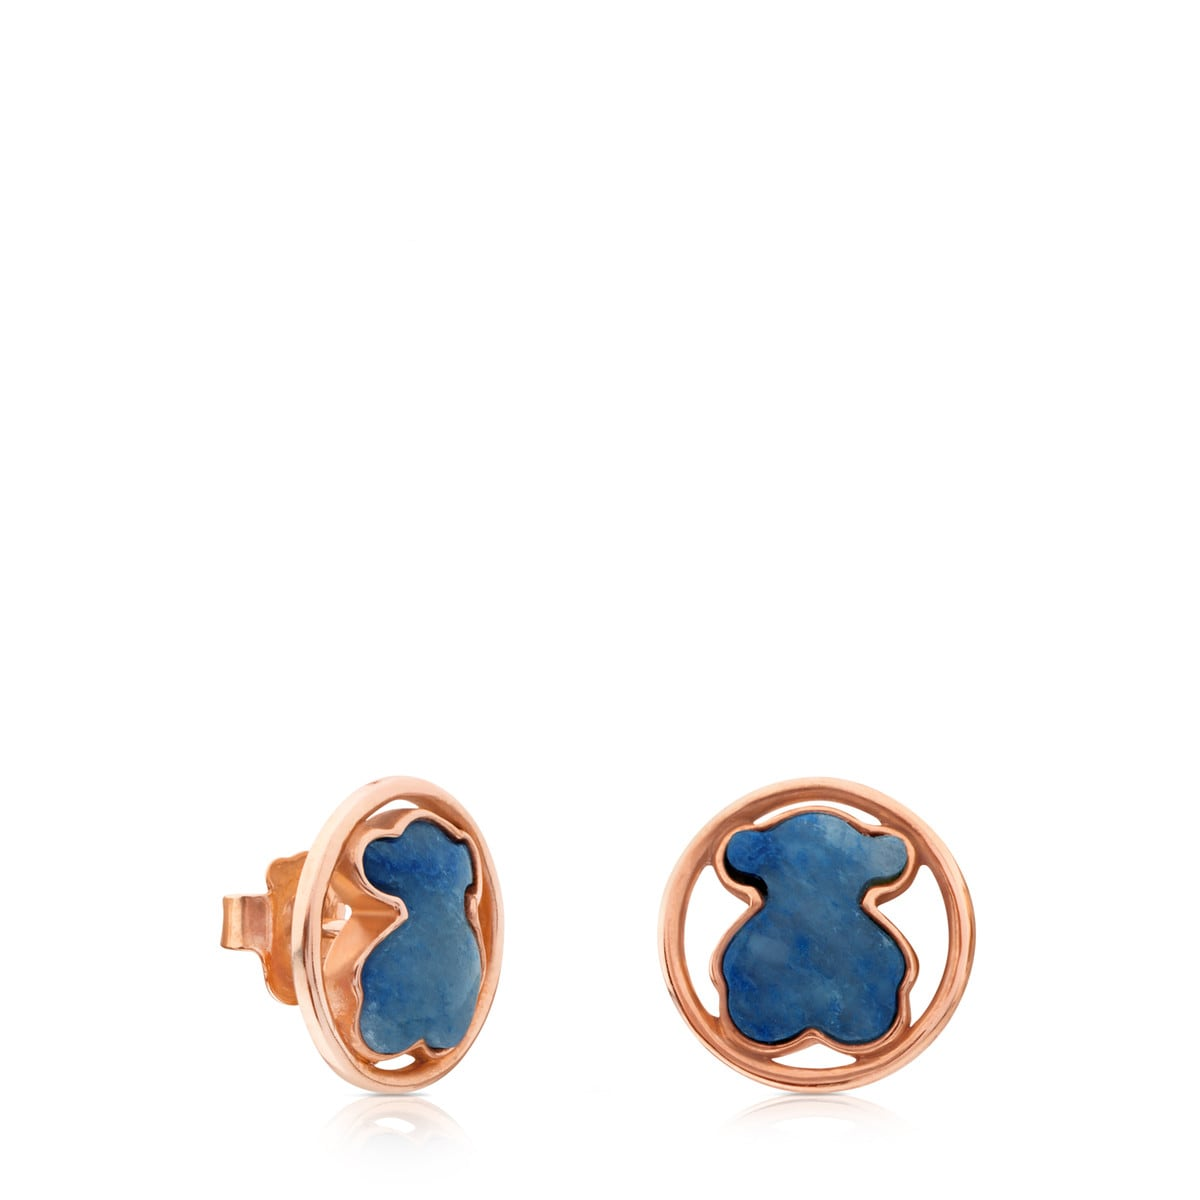 Rose Vermeil Silver Camille Earrings with Quartz with Dumortierite